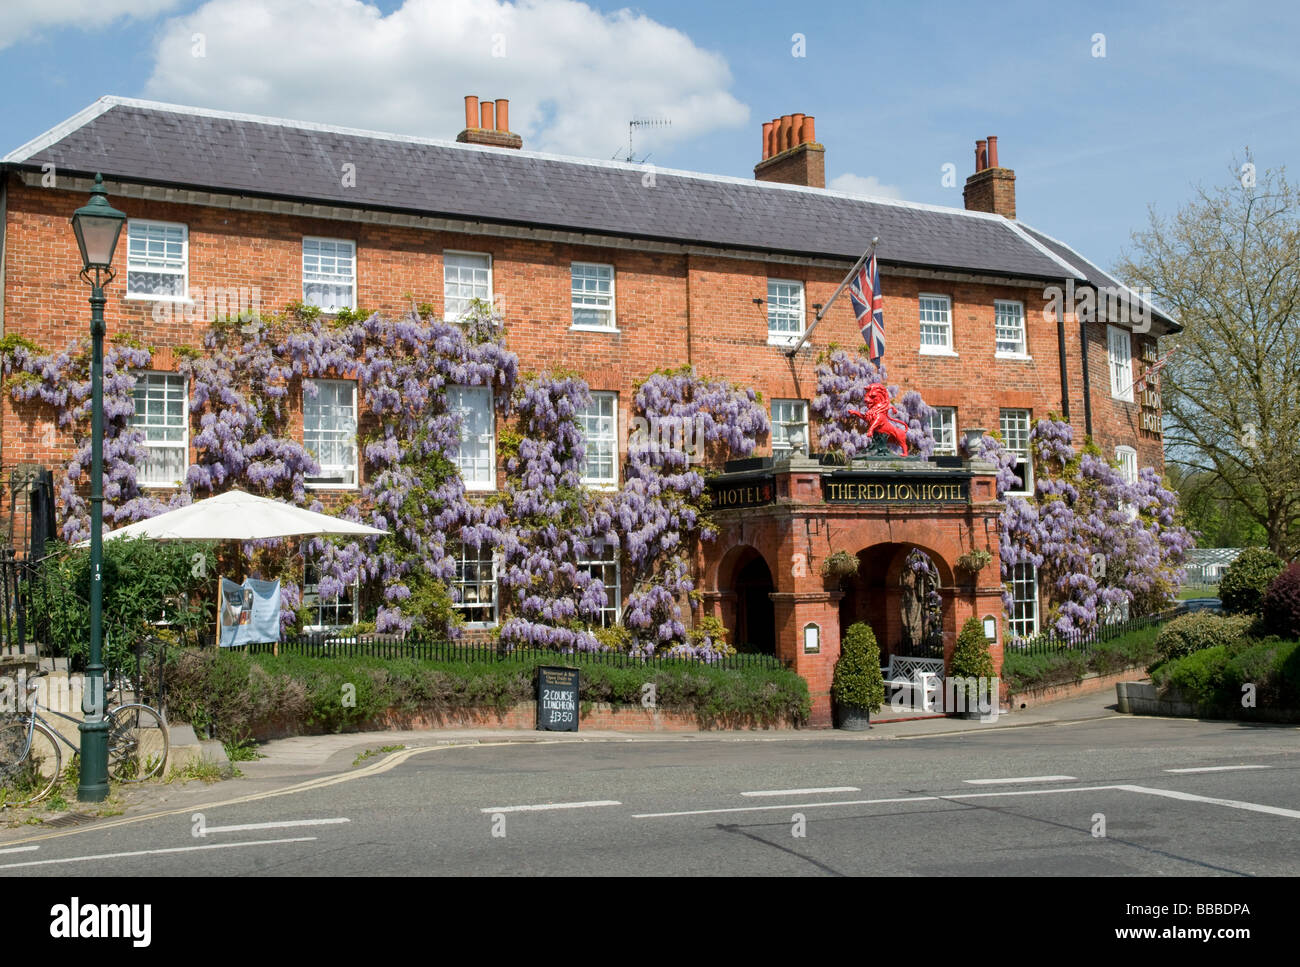 Wisteria Covering The Facade Of The Red Lion Hotel In Stock Photo Alamy